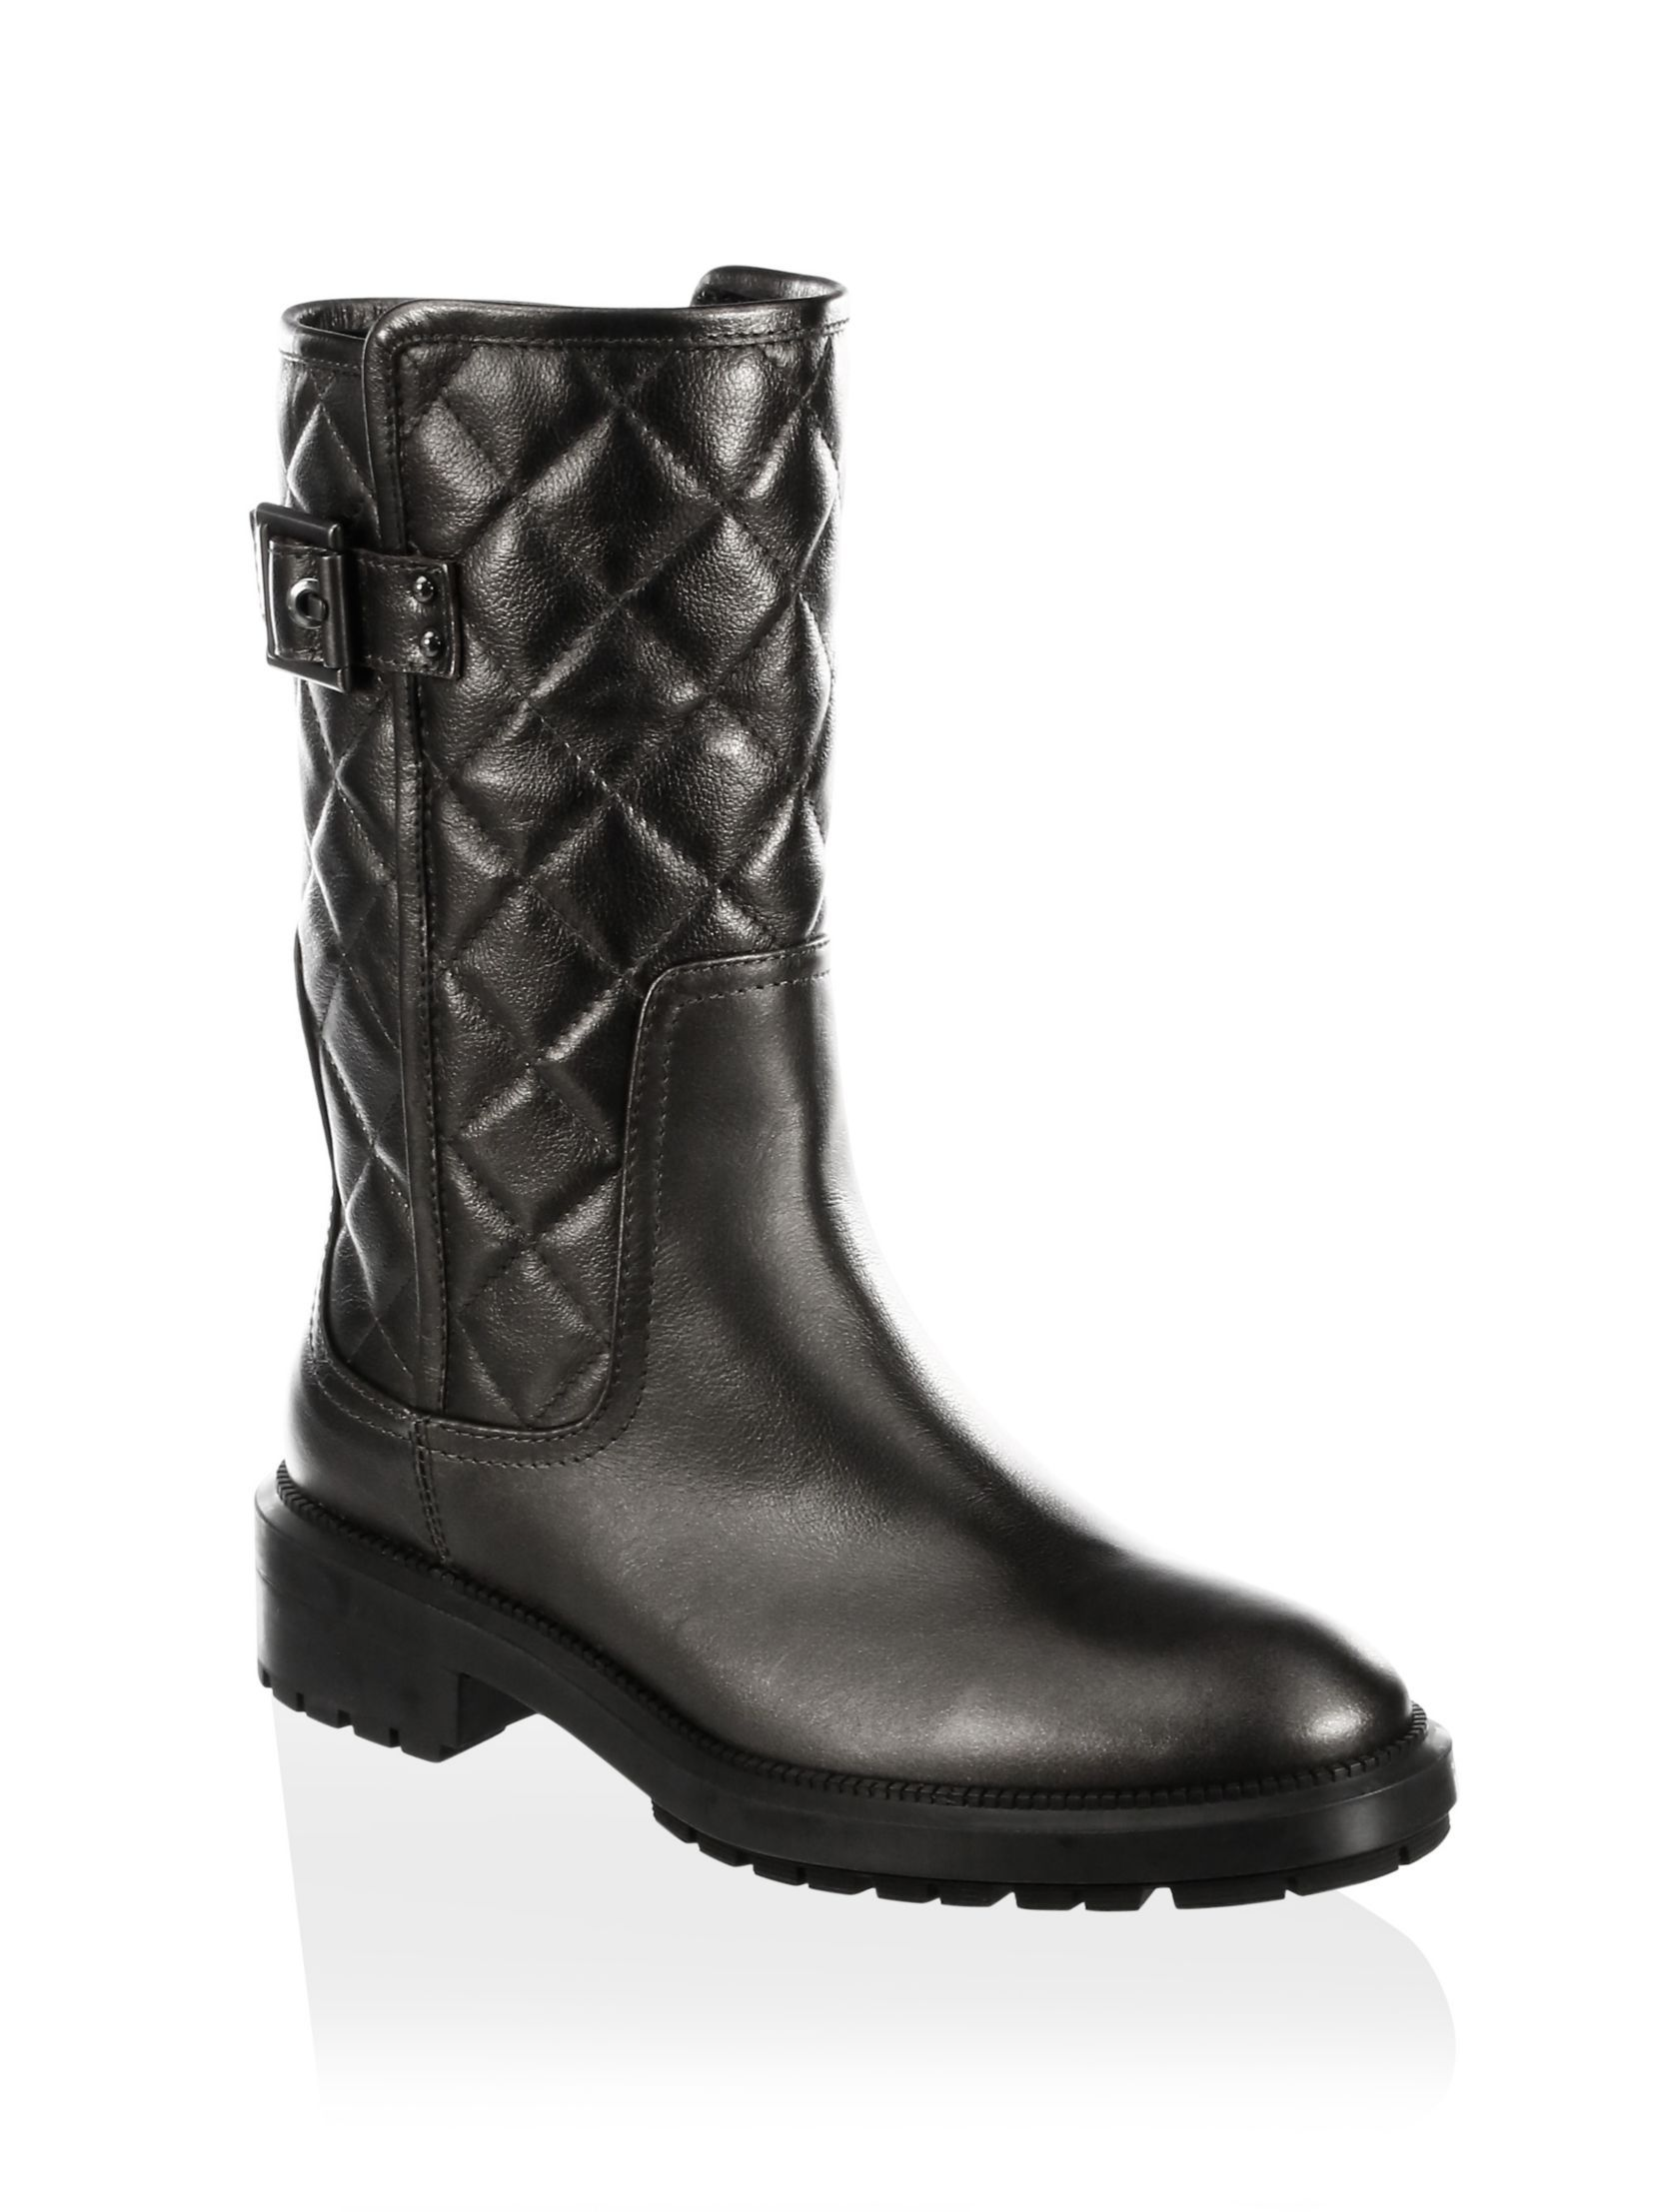 2015 new online low price fee shipping online Aquatalia Quilted Leather Moto Boots gwccnS96Yy